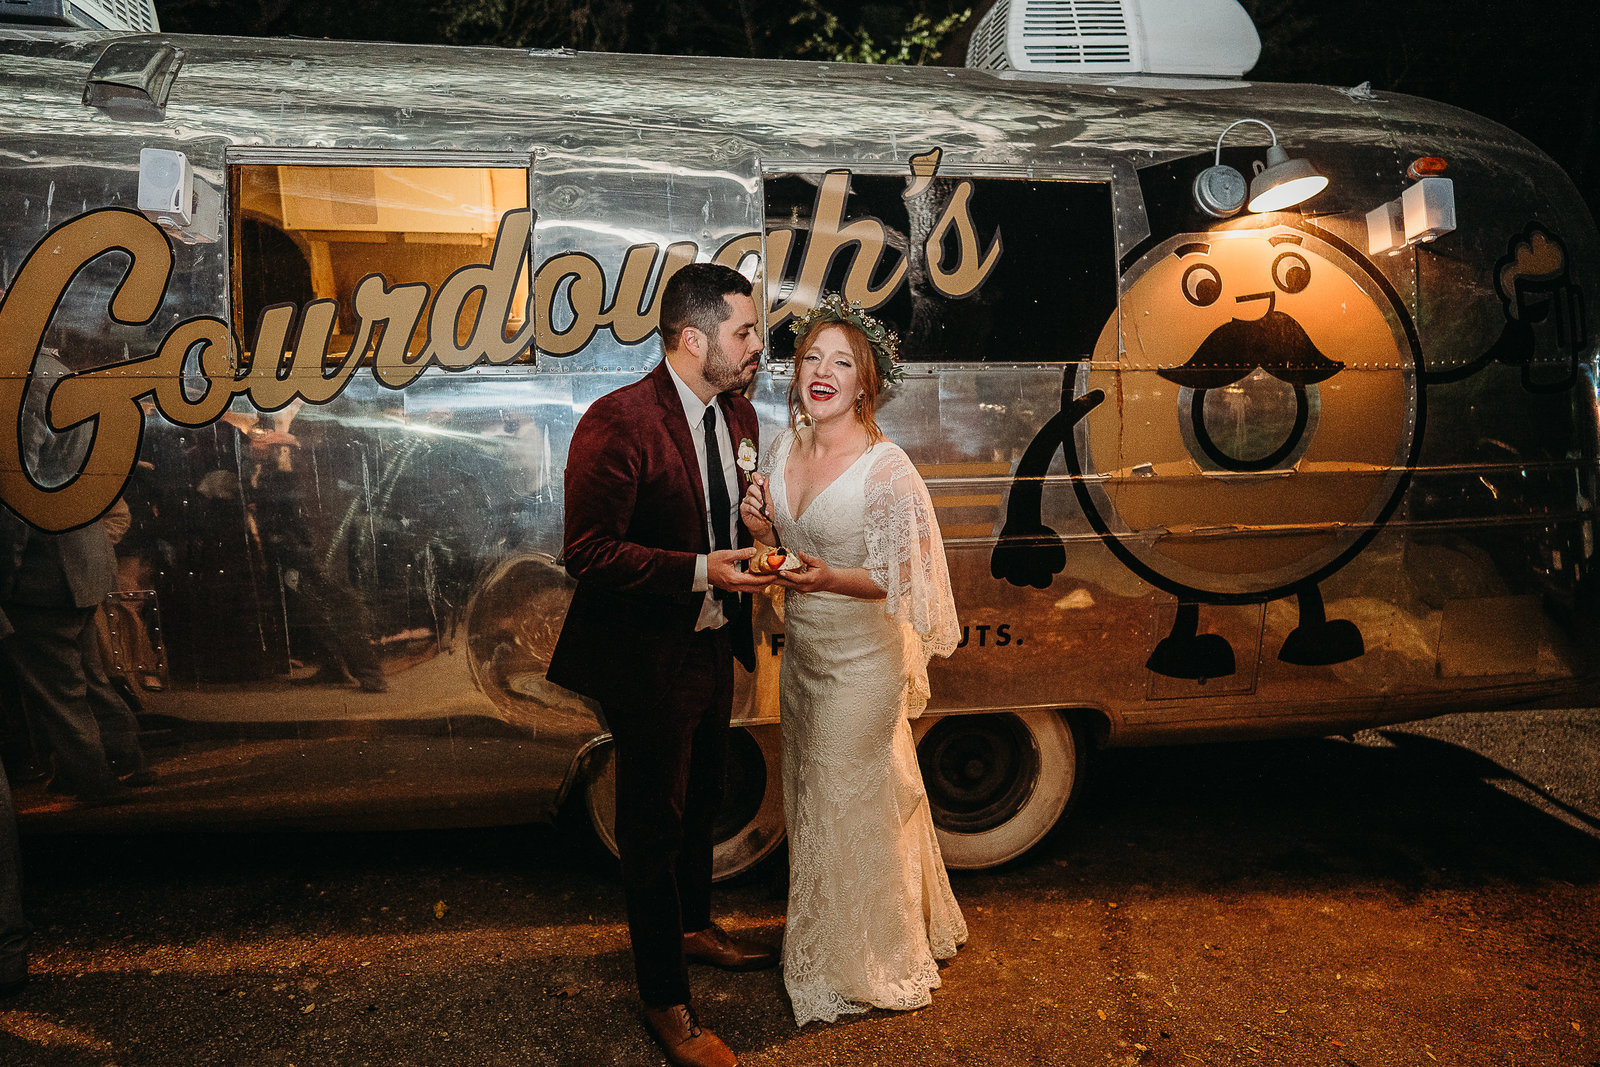 couple shares a donut outside food truck after wedding